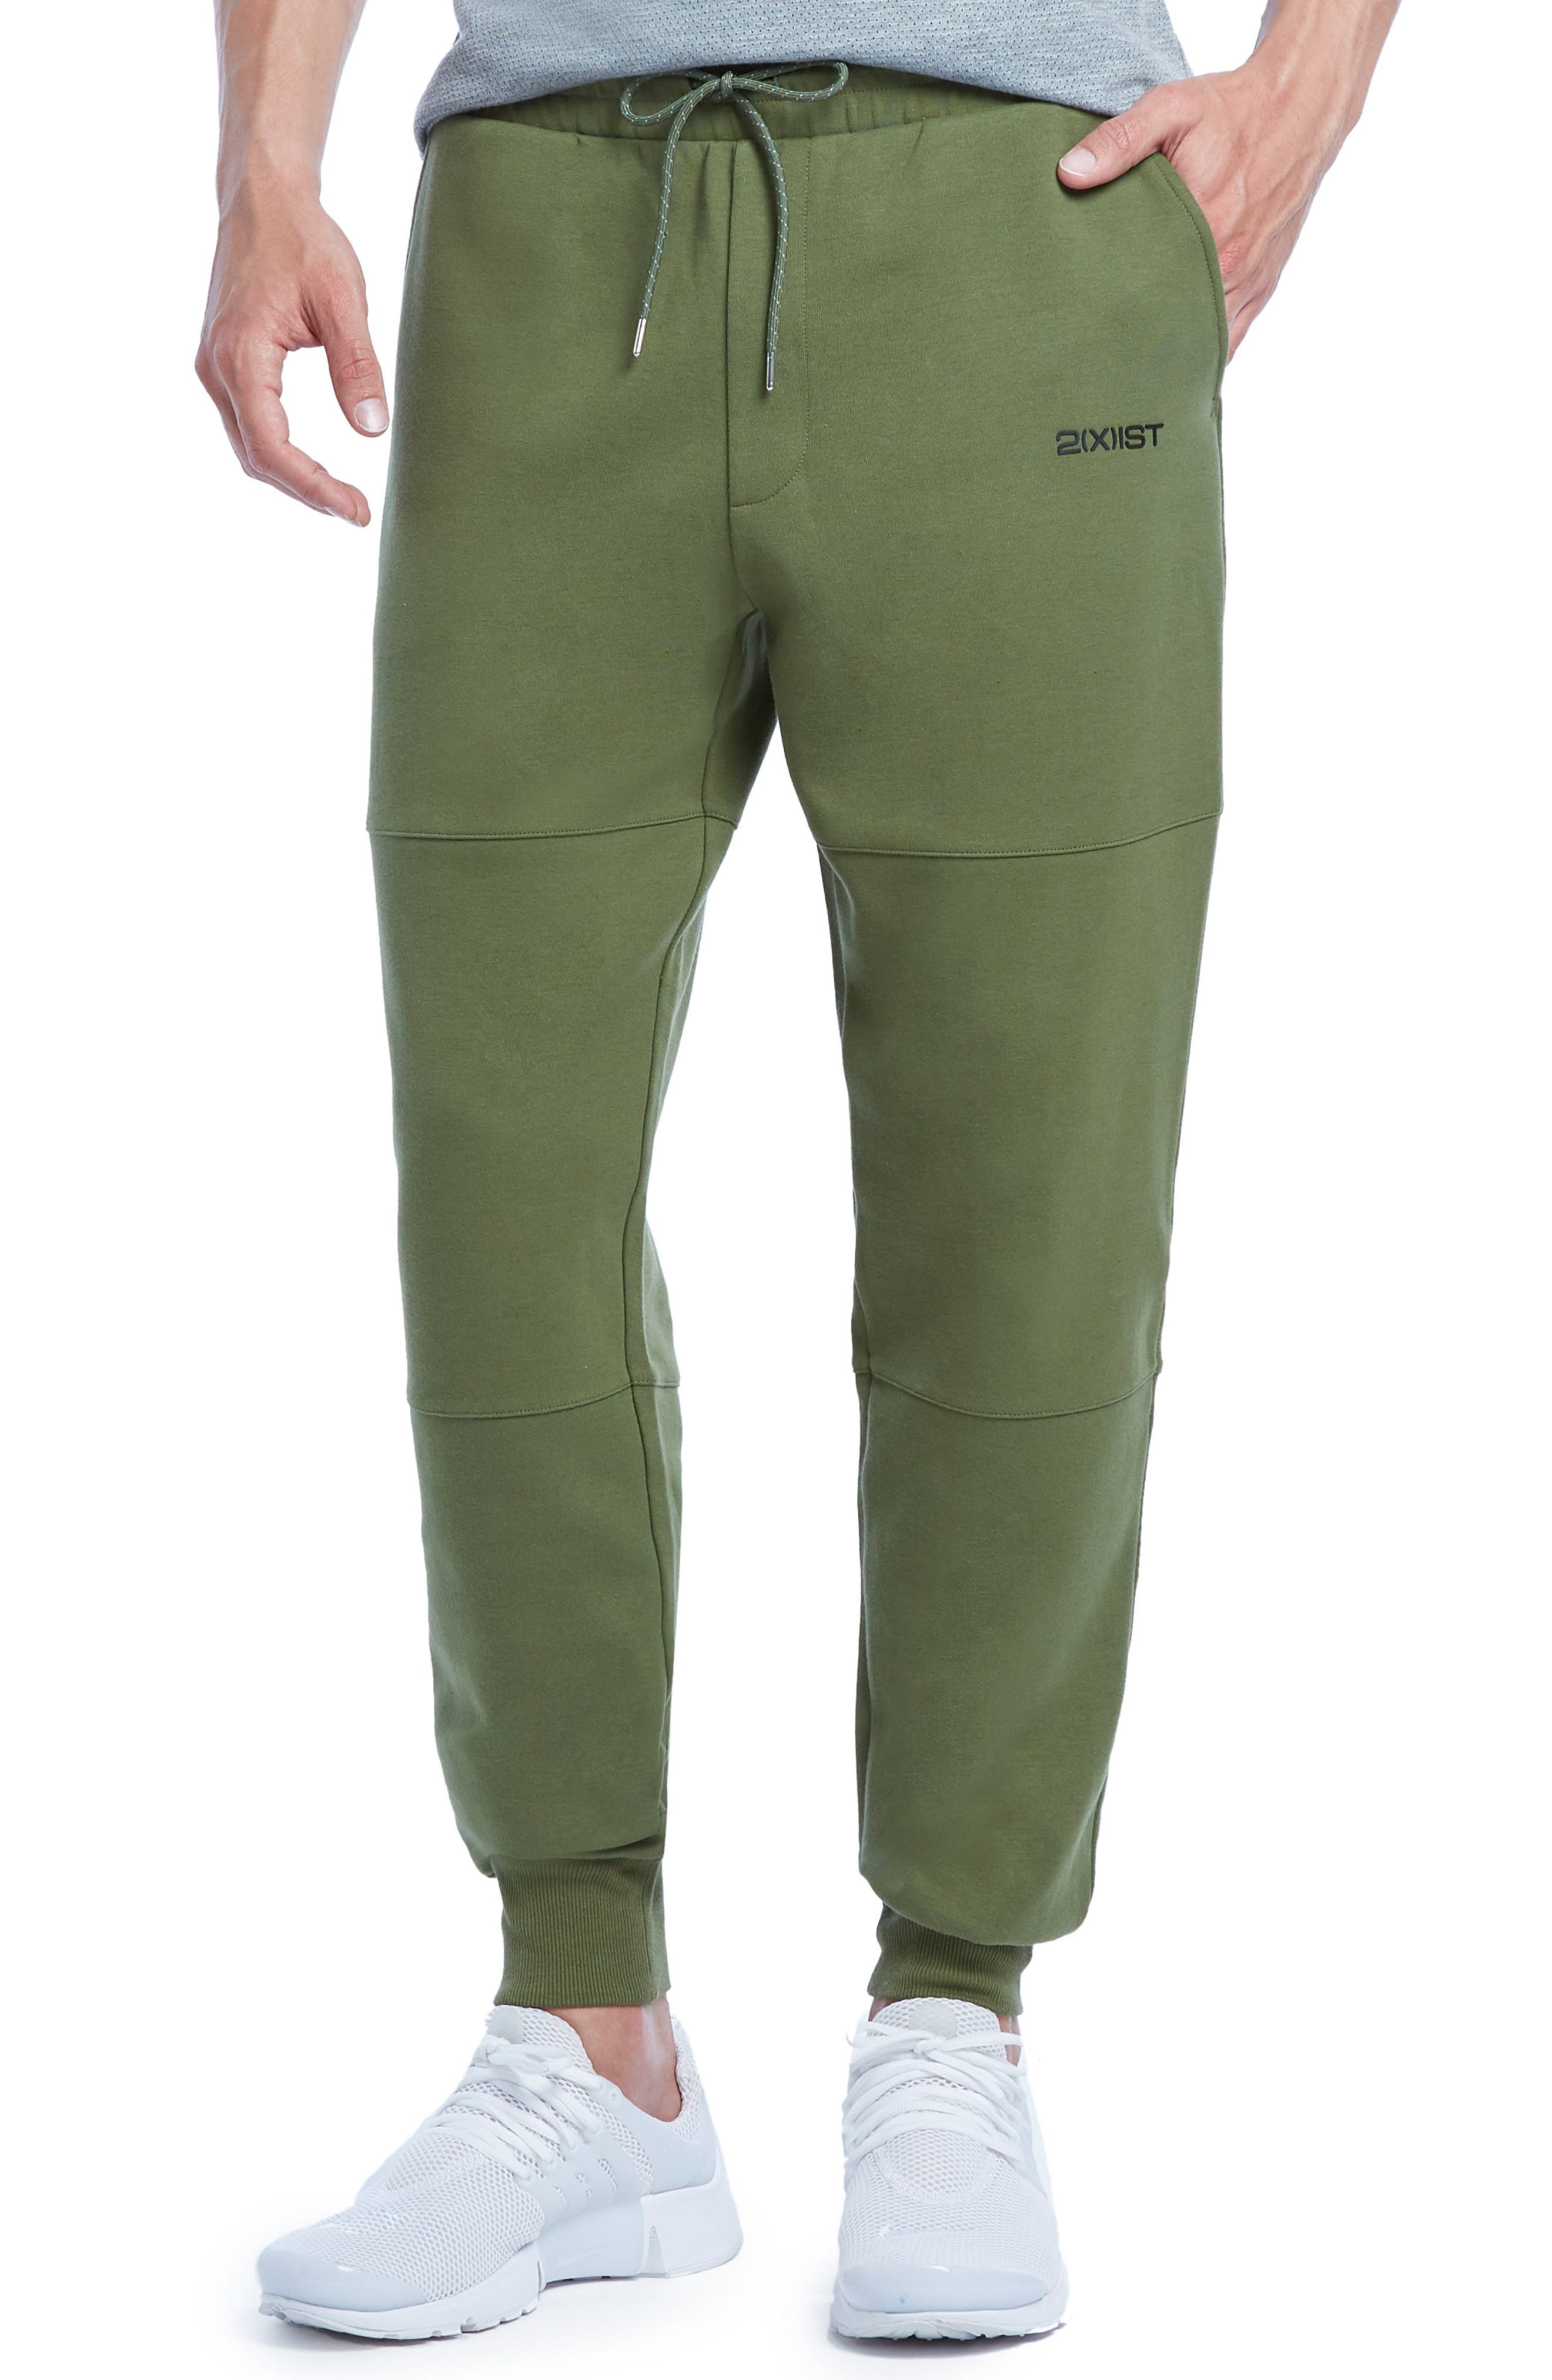 Alternate Image 1 Selected - 2(x)ist Military Sport Lounge Pants